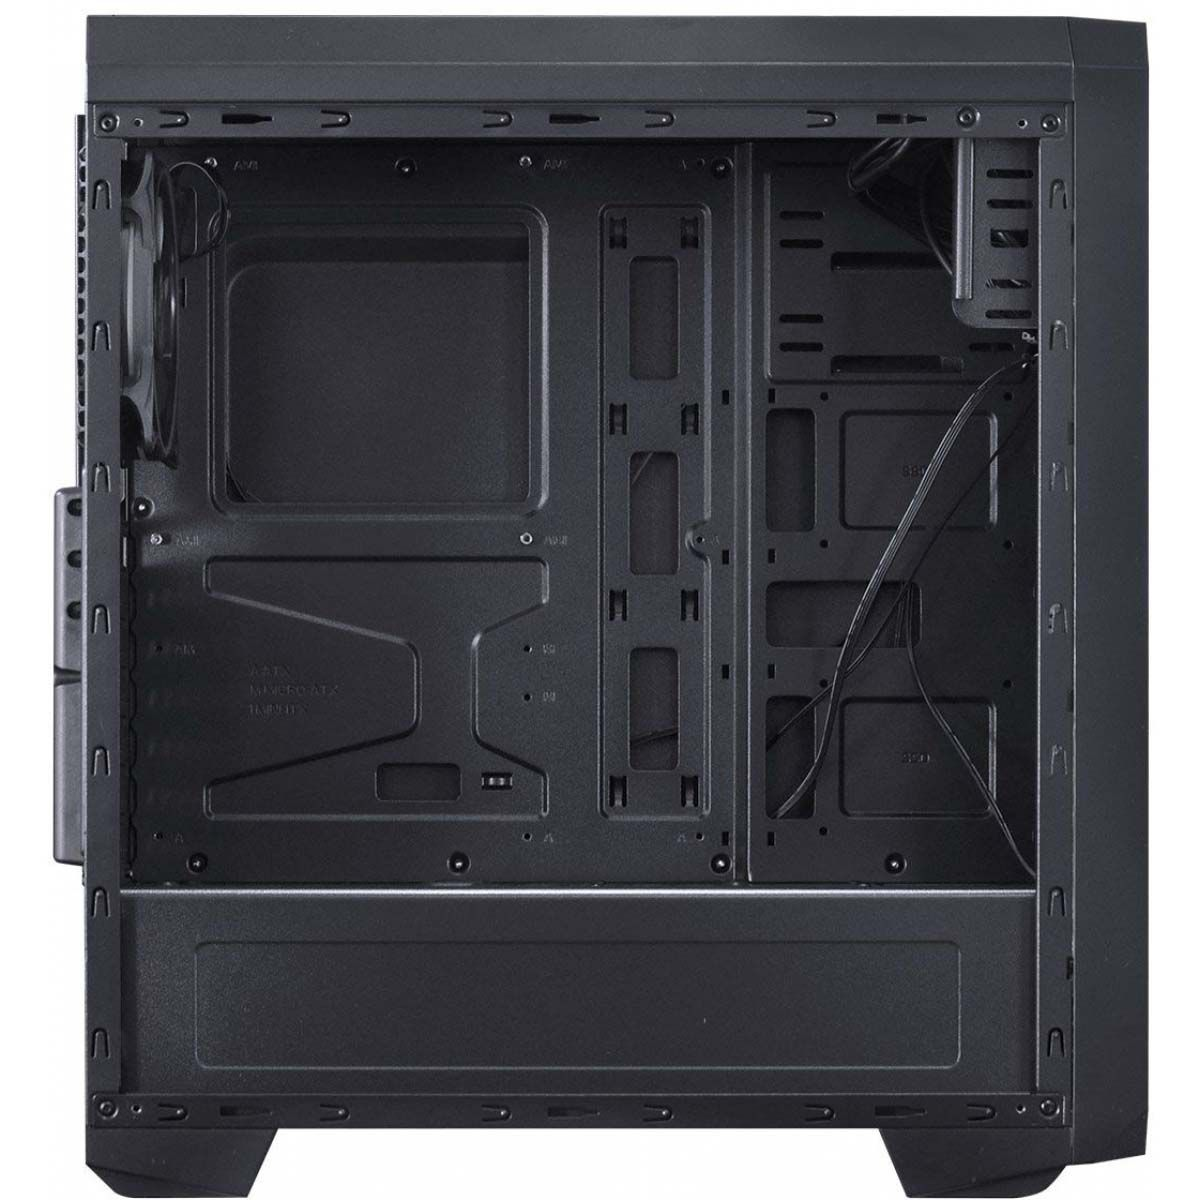 Gabinete Mid Tower Nova Lateral Acrílico Fan Led 7 Cores